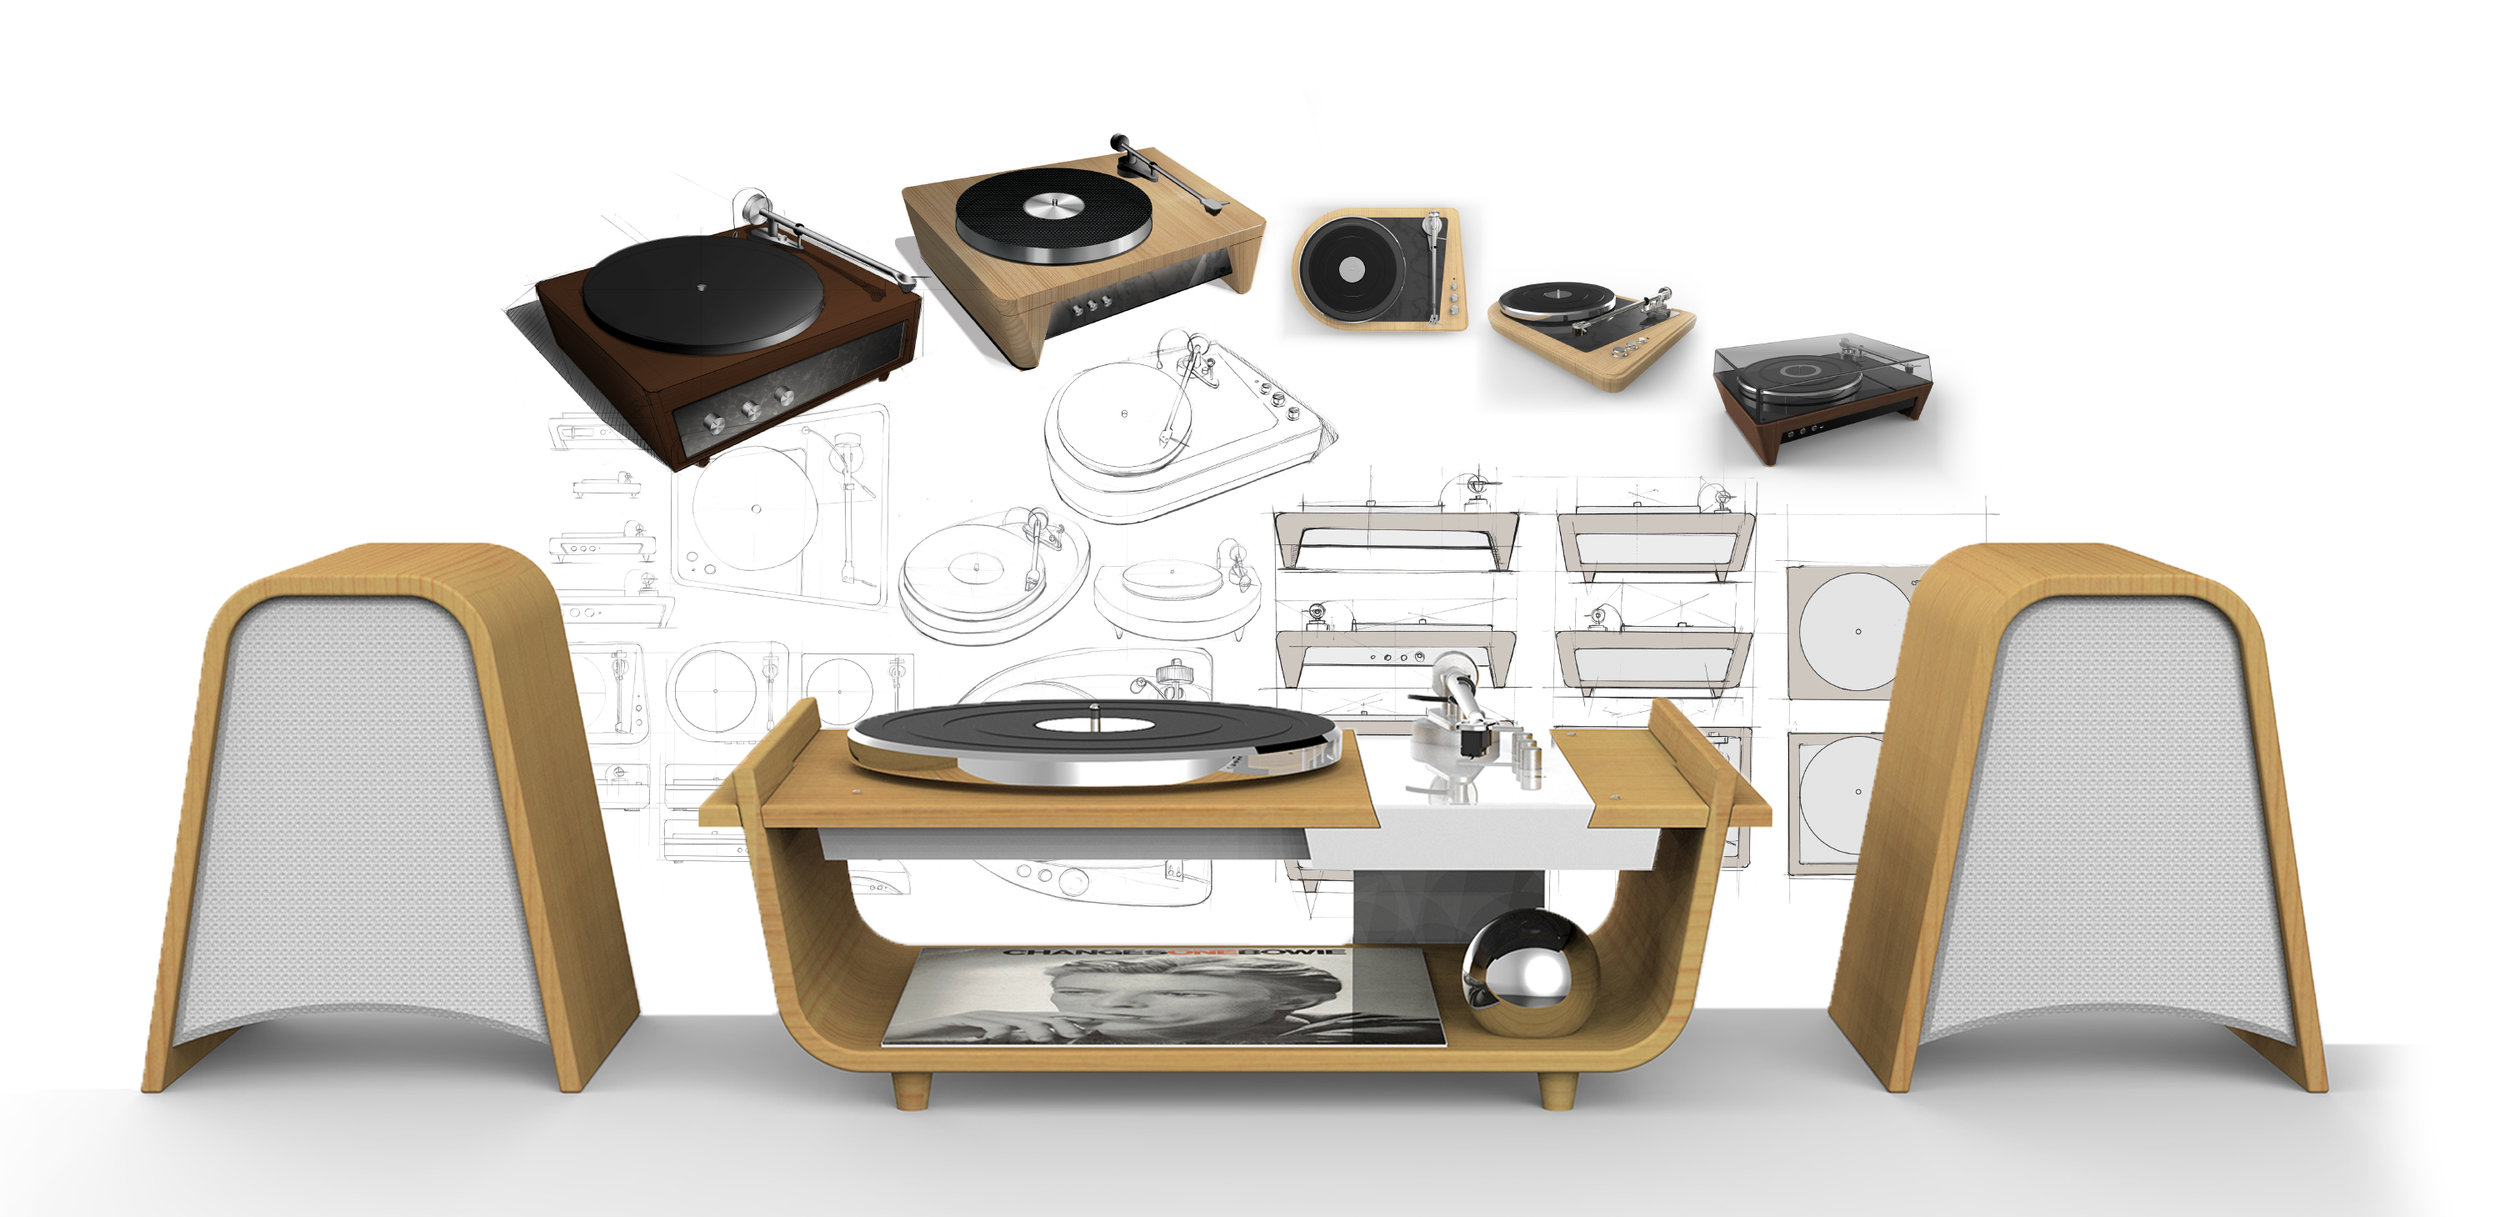 Artboard 3_Animato_Turntable.jpg